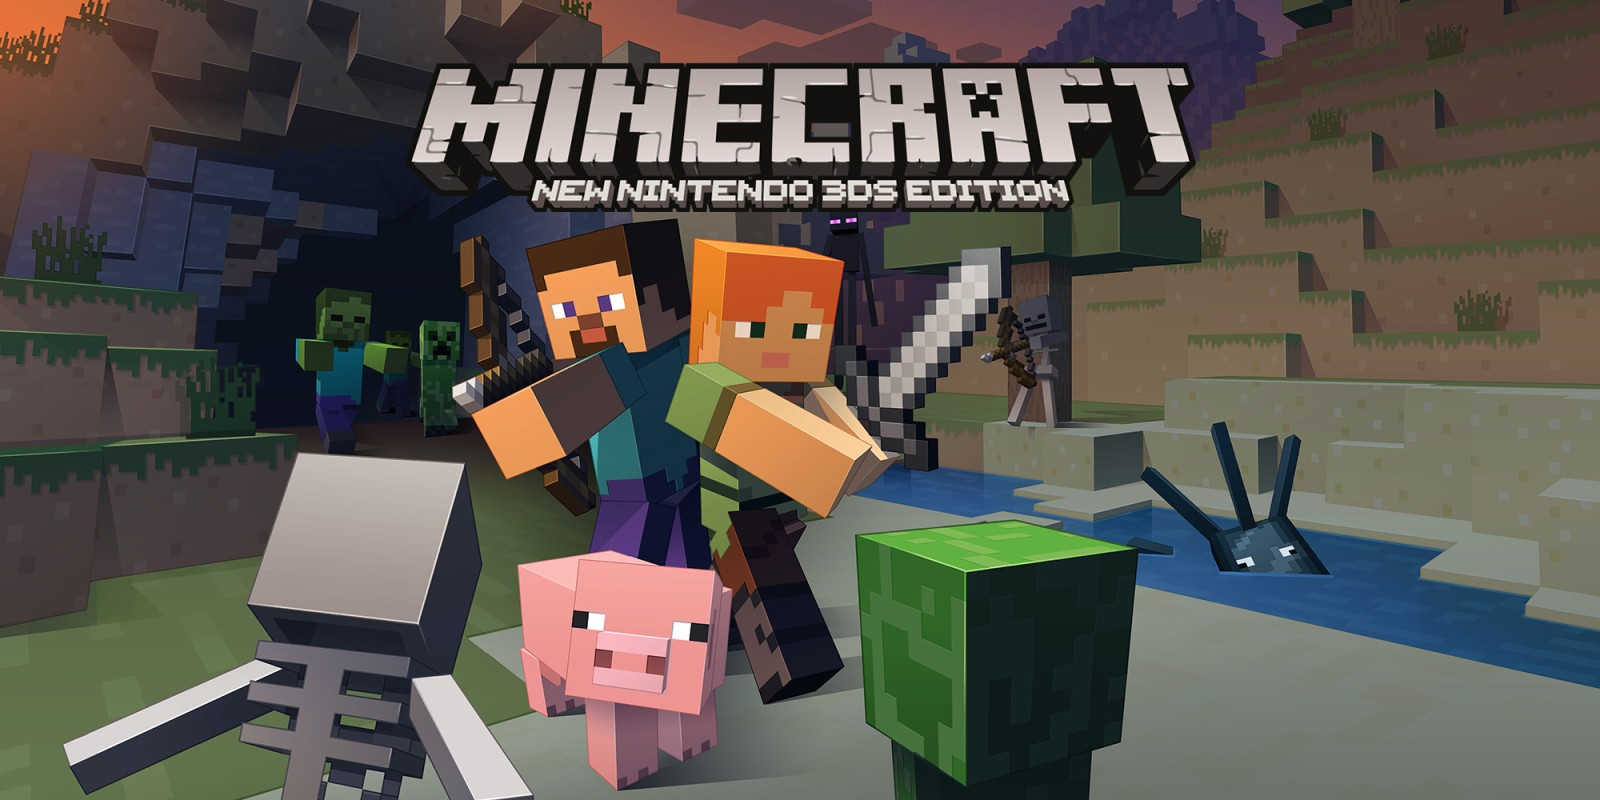 Minecraft: New Nintendo 3DS Edition | New Nintendo 3DS